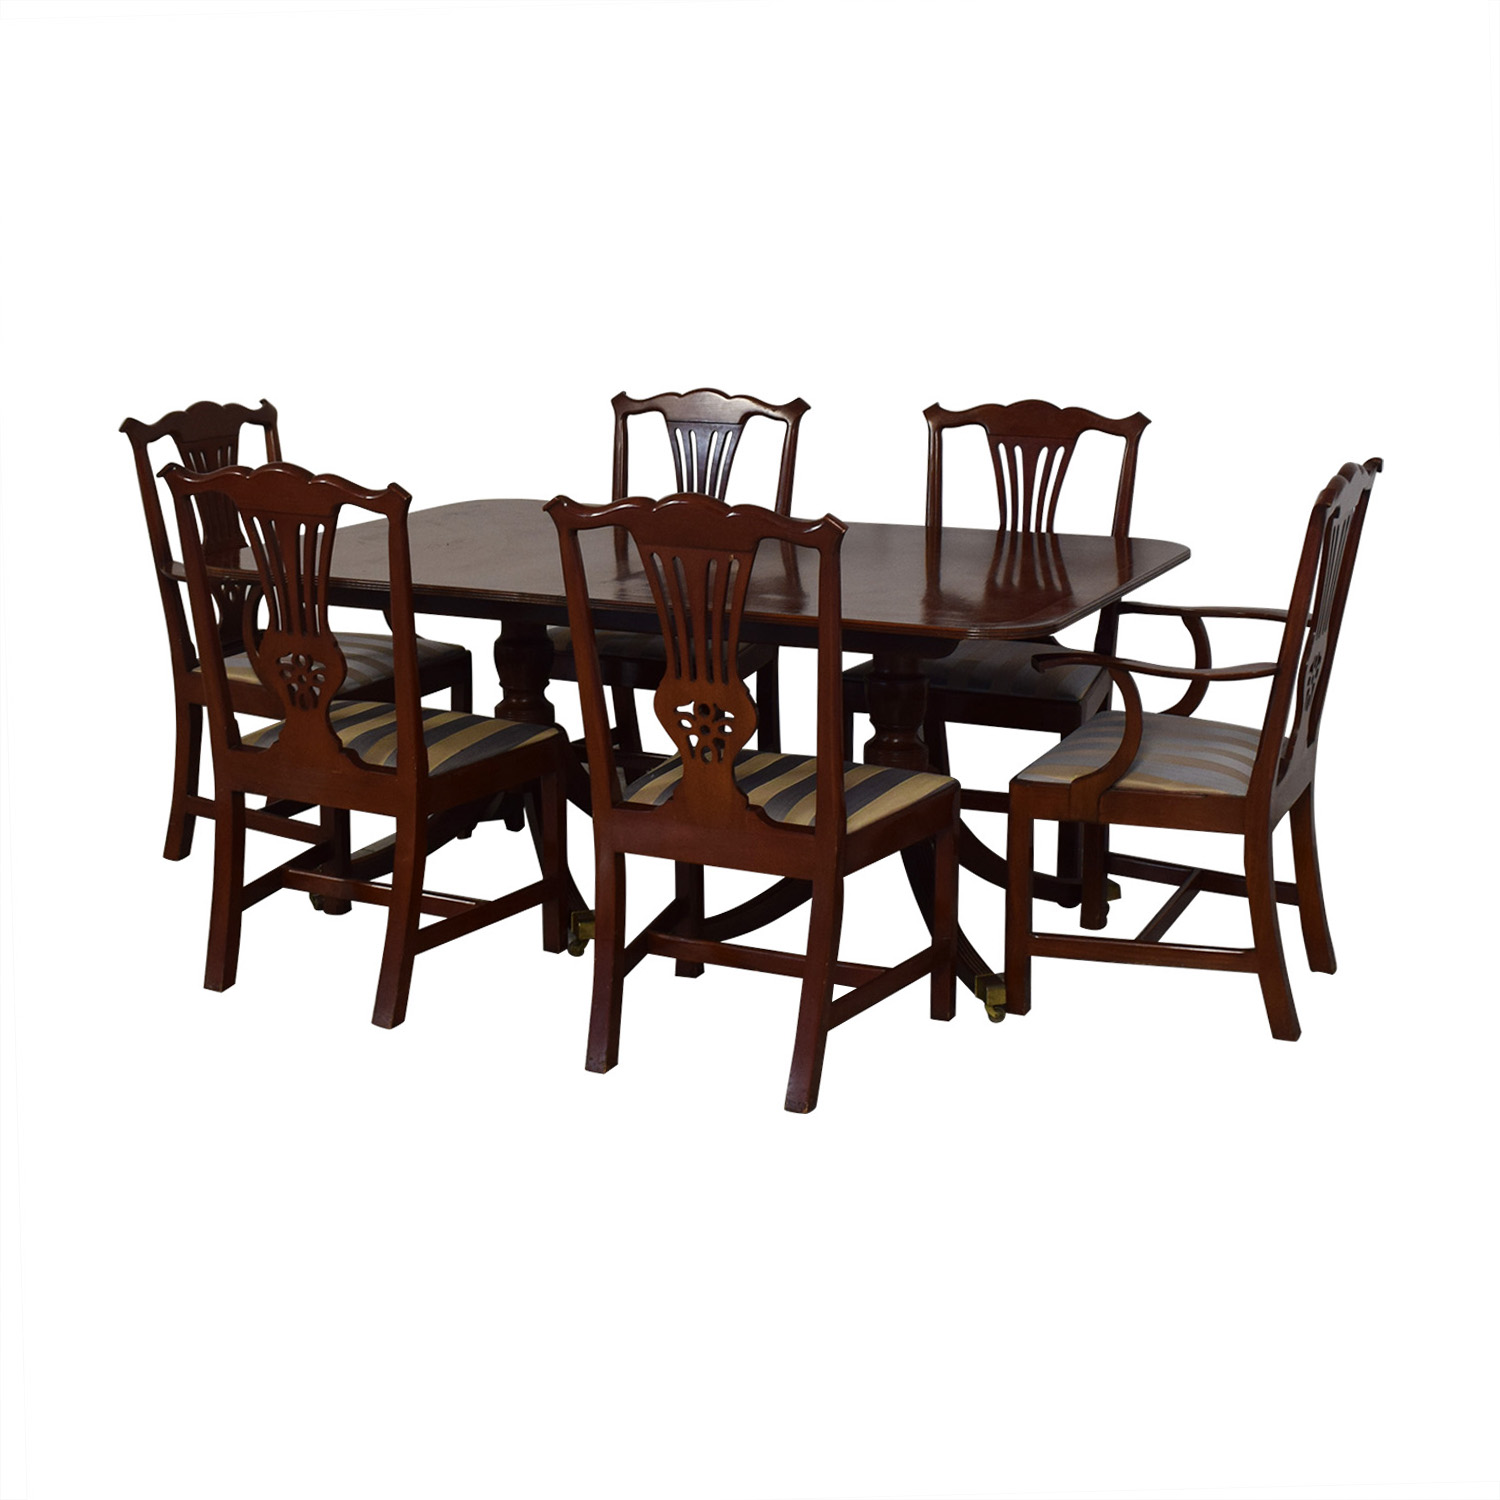 Baker Furniture Dining Room Table and Chairs / Tables